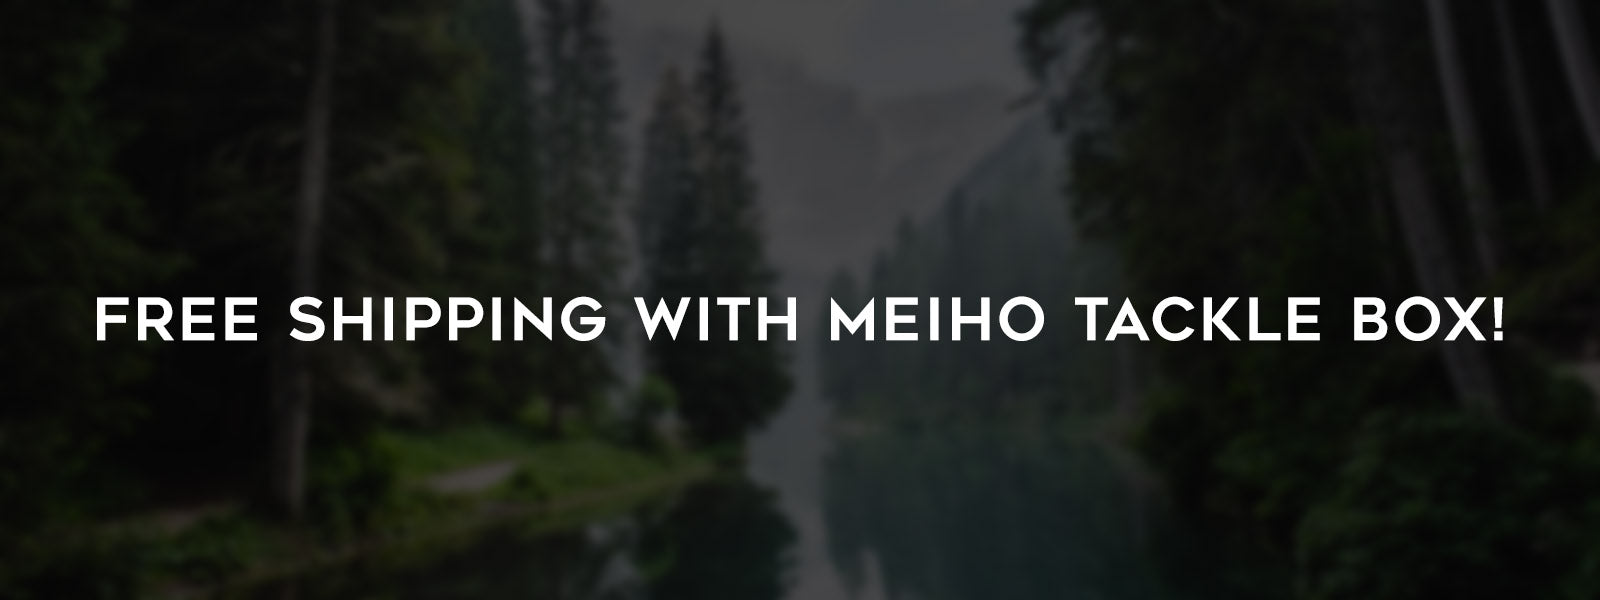 Meiho Tackle Box Offers Free Ground Shipping On Orders Over 40 Dolalrs